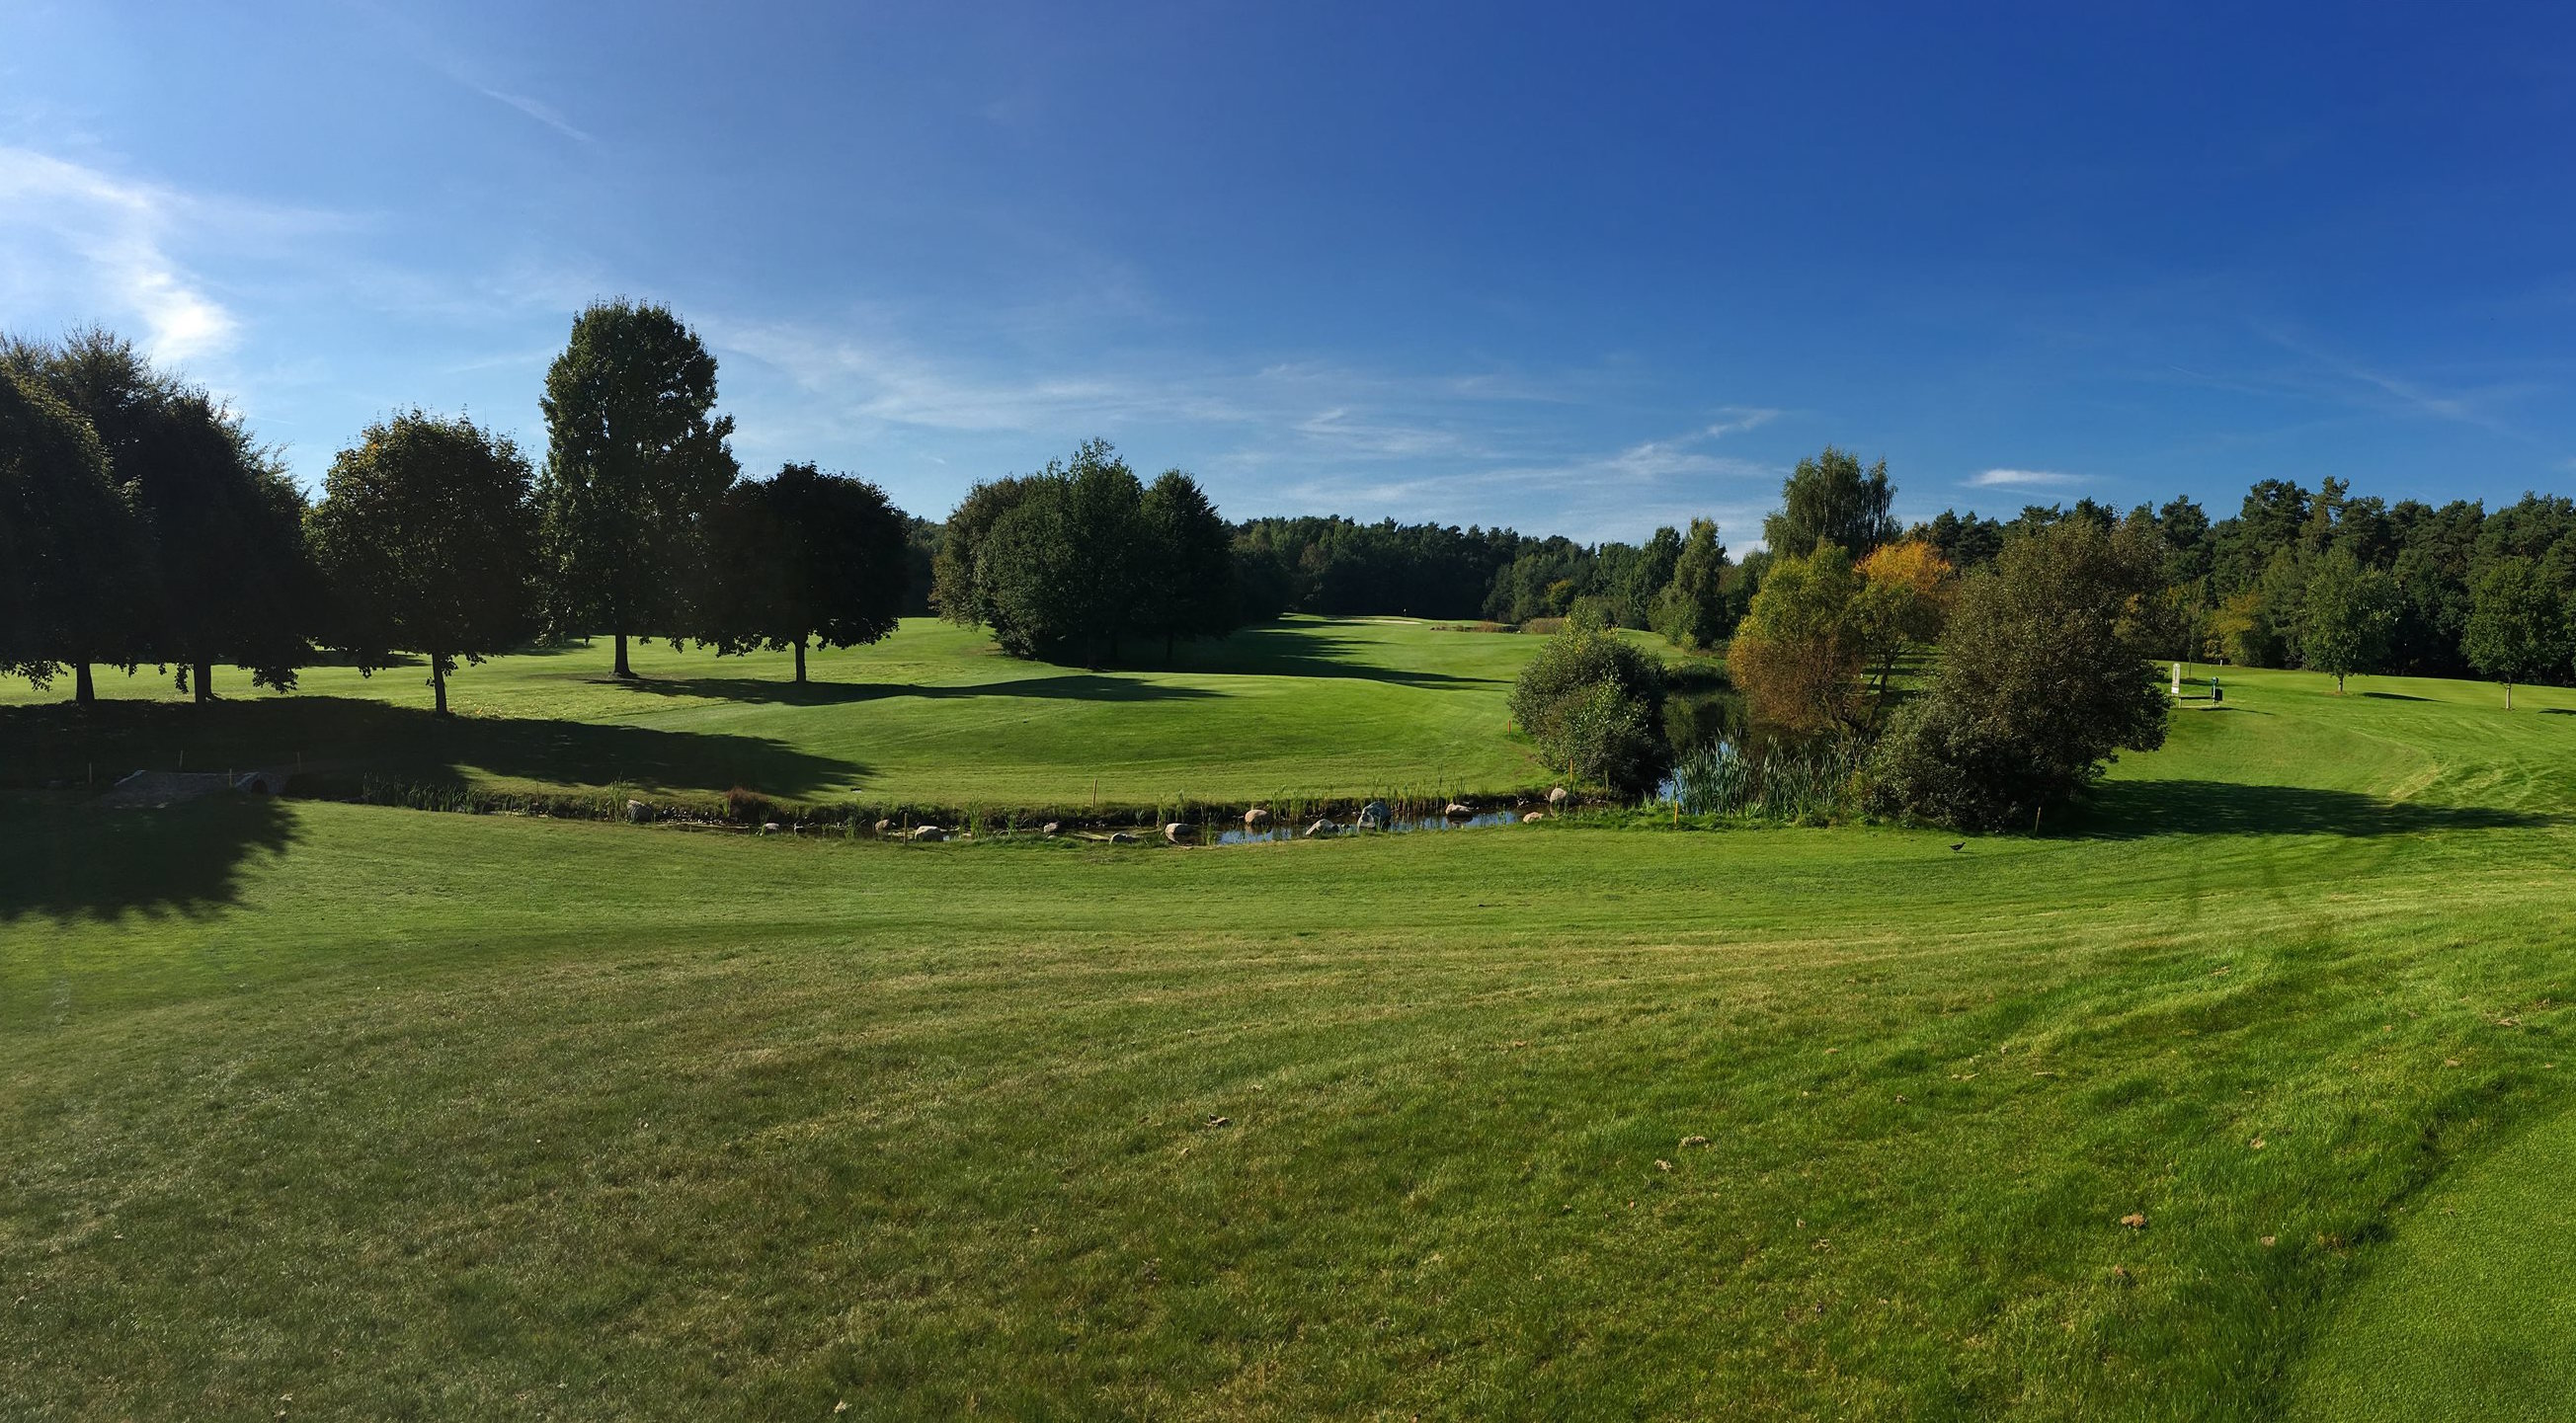 Overview of golf course named Syke Golf Club